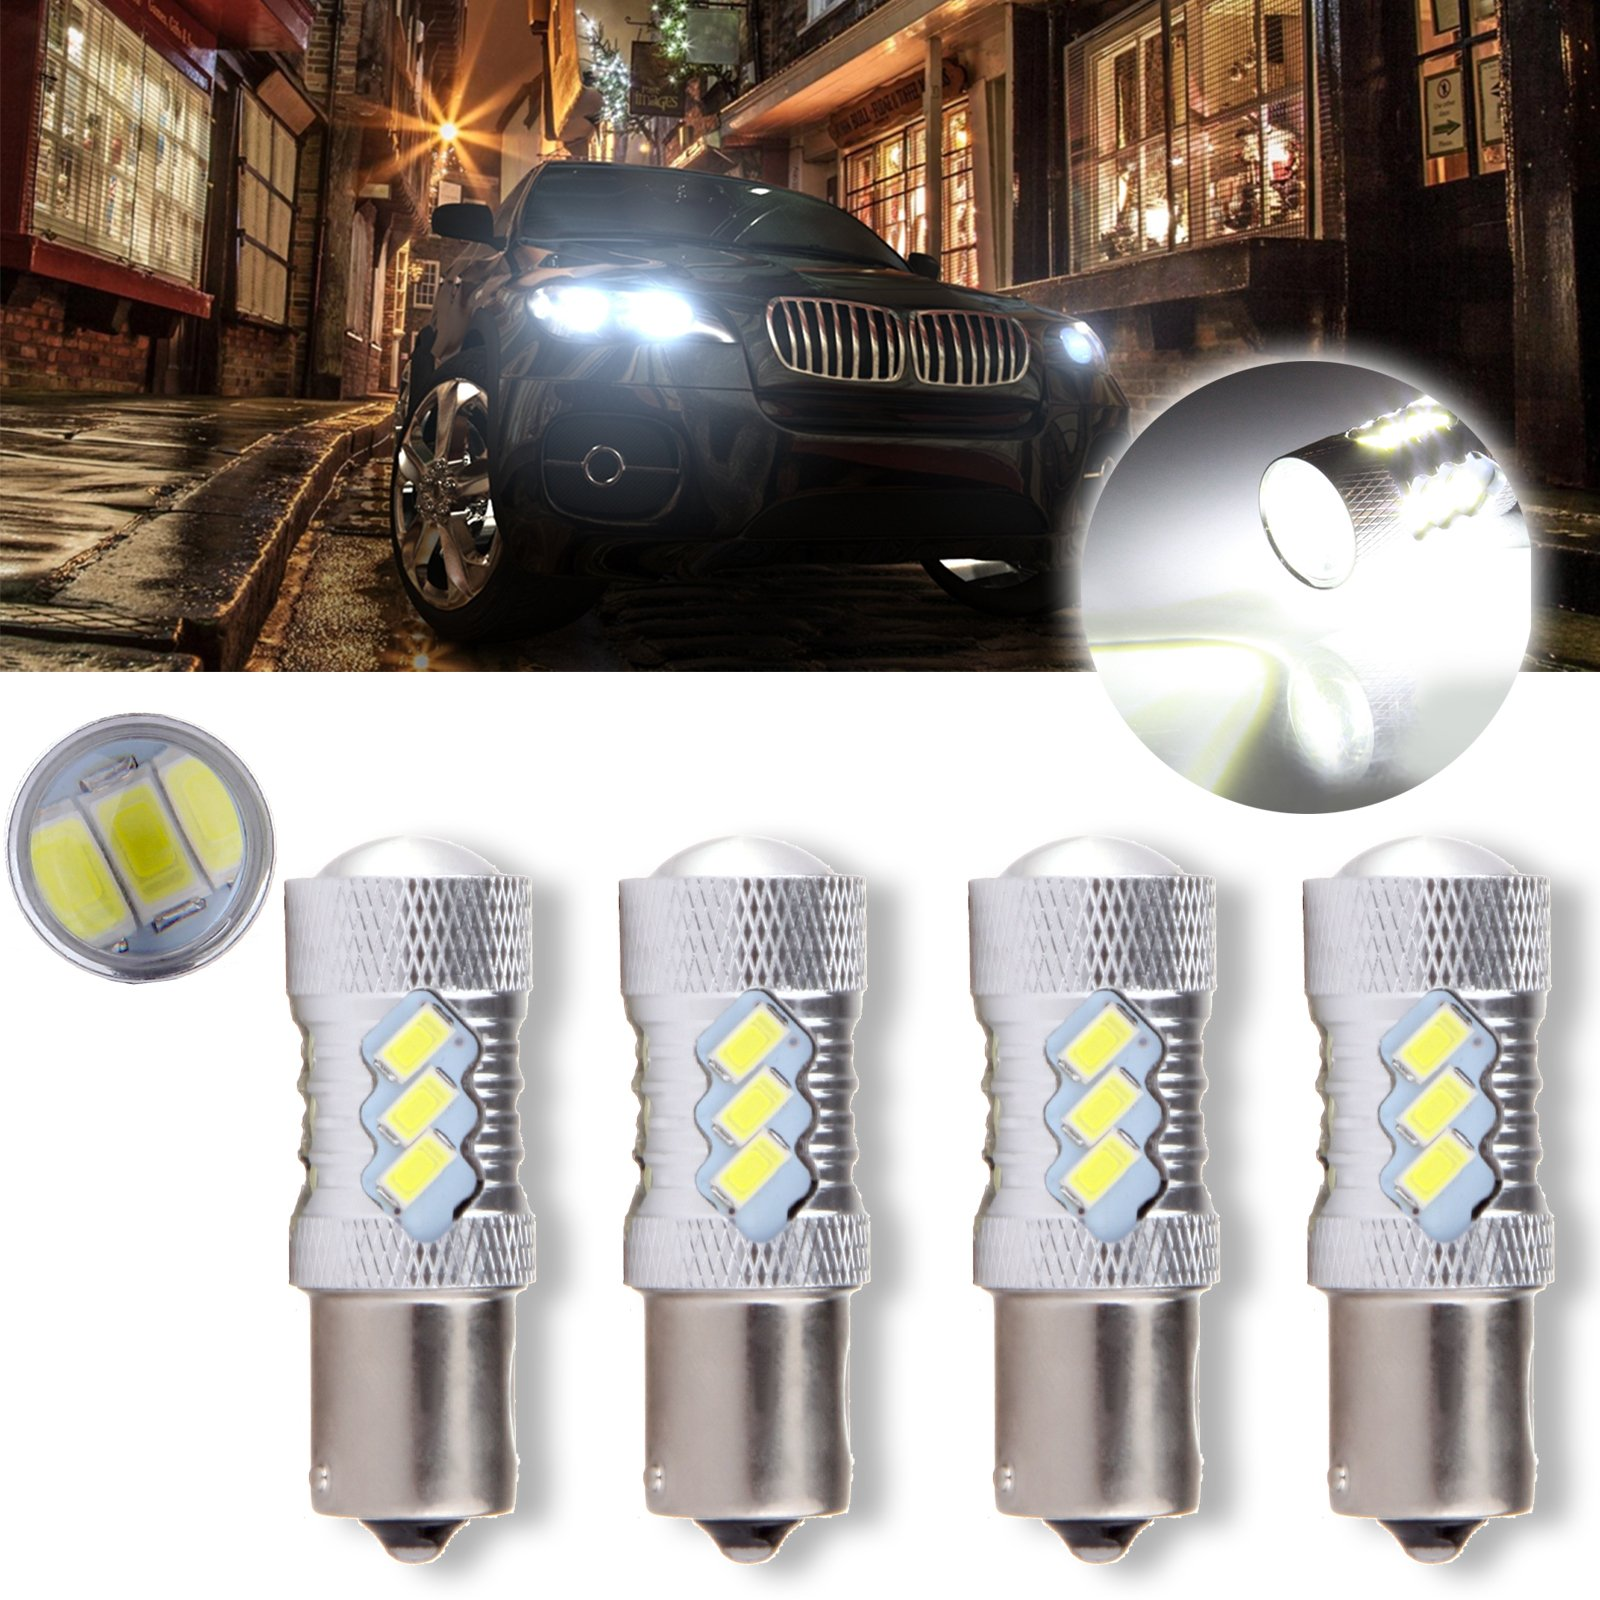 CCIYU 4 Pack Xenon White 6000K 60W 6000K Cree 1156 BA15S LED 15 5730 SMD Reverse Backup Light Bulb